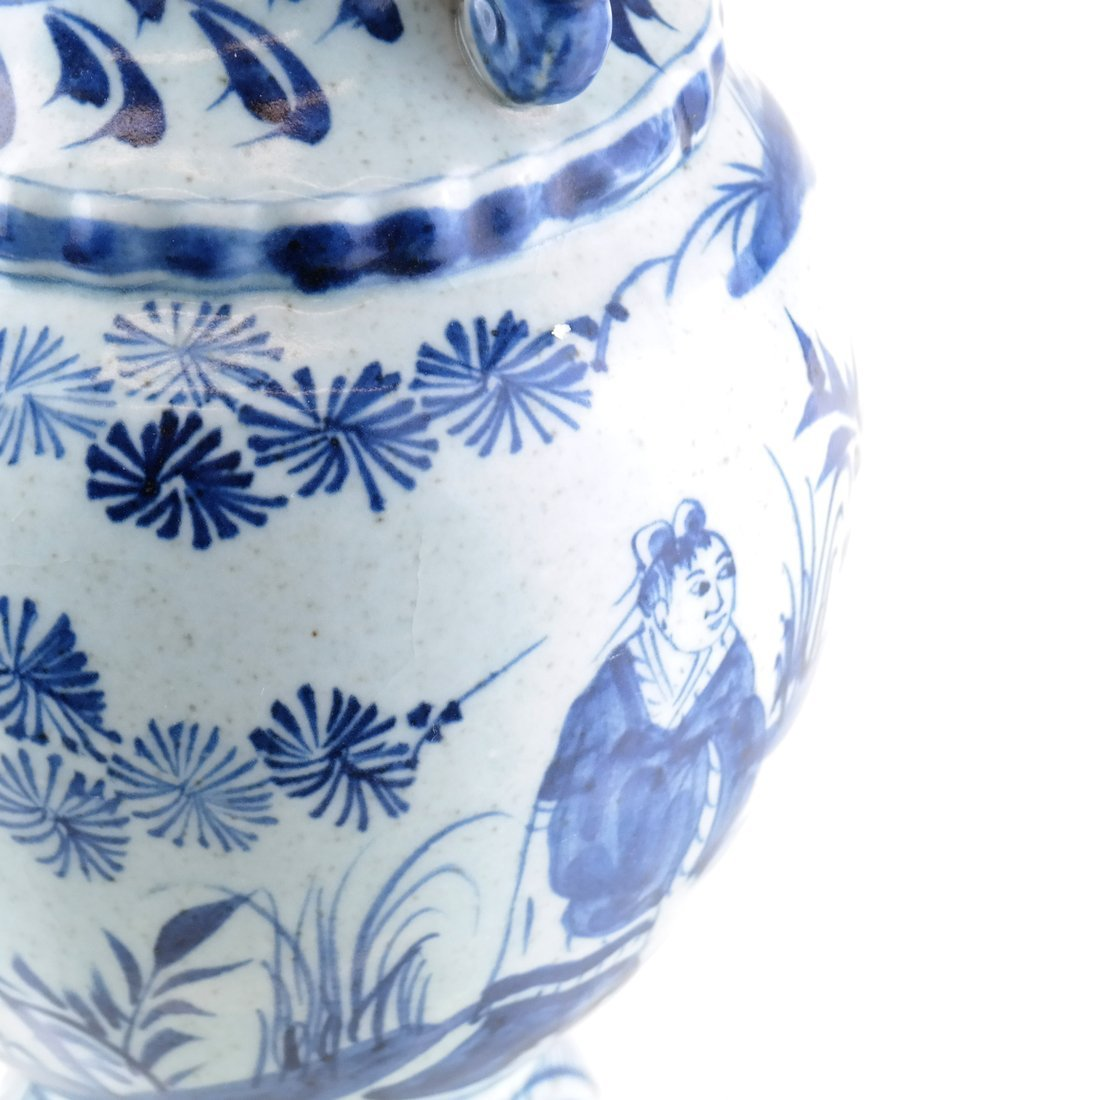 Asian-Style Blue and White Ceramic Vase - 6